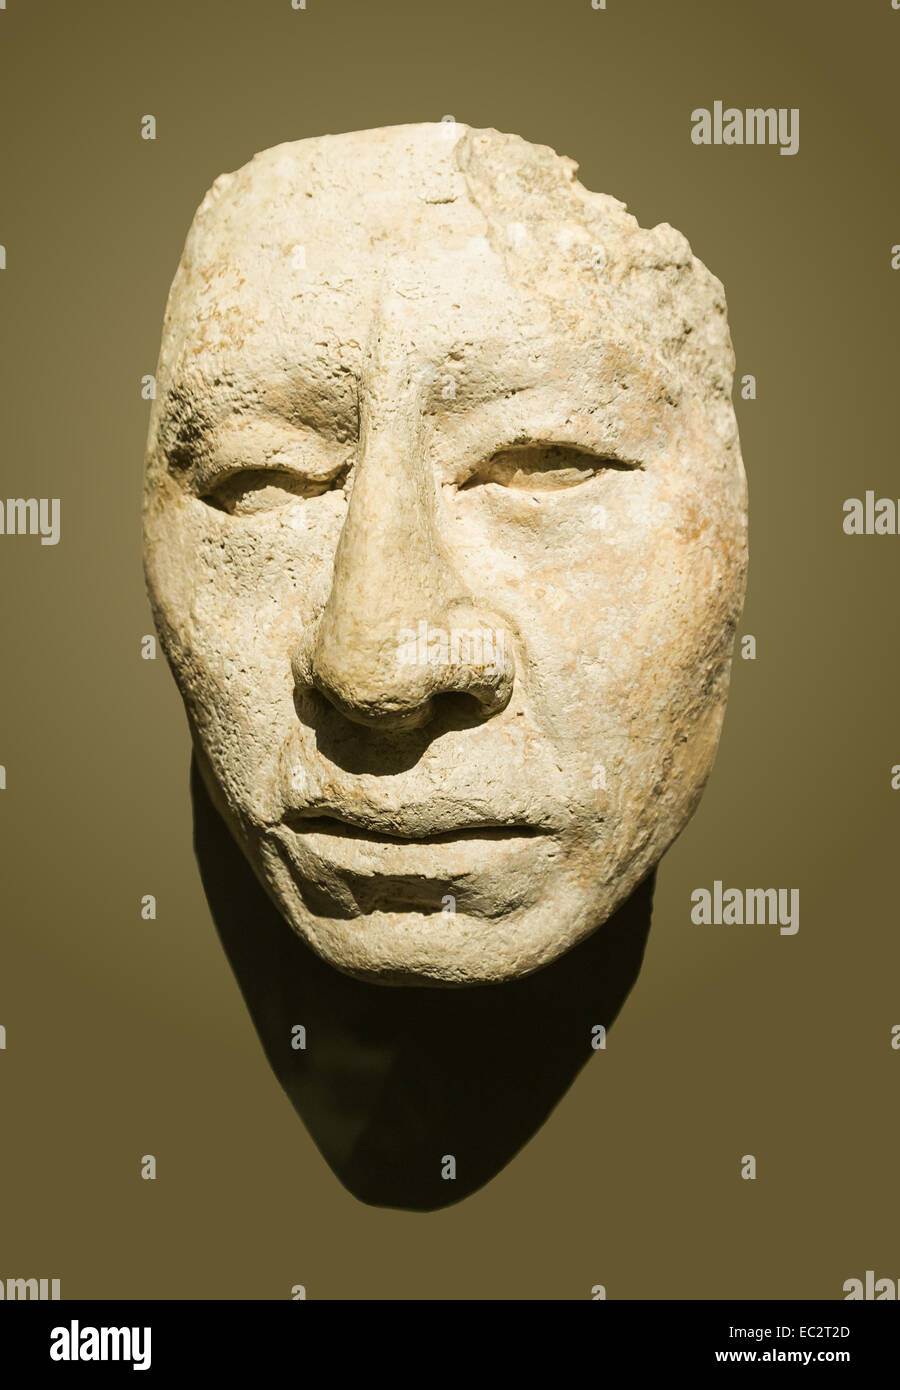 sculpture of a a face stucco classic recent era  classic recent era 600 900 c e found in palenque from the national museum of anthropology of on display in a temporary exhibition as at